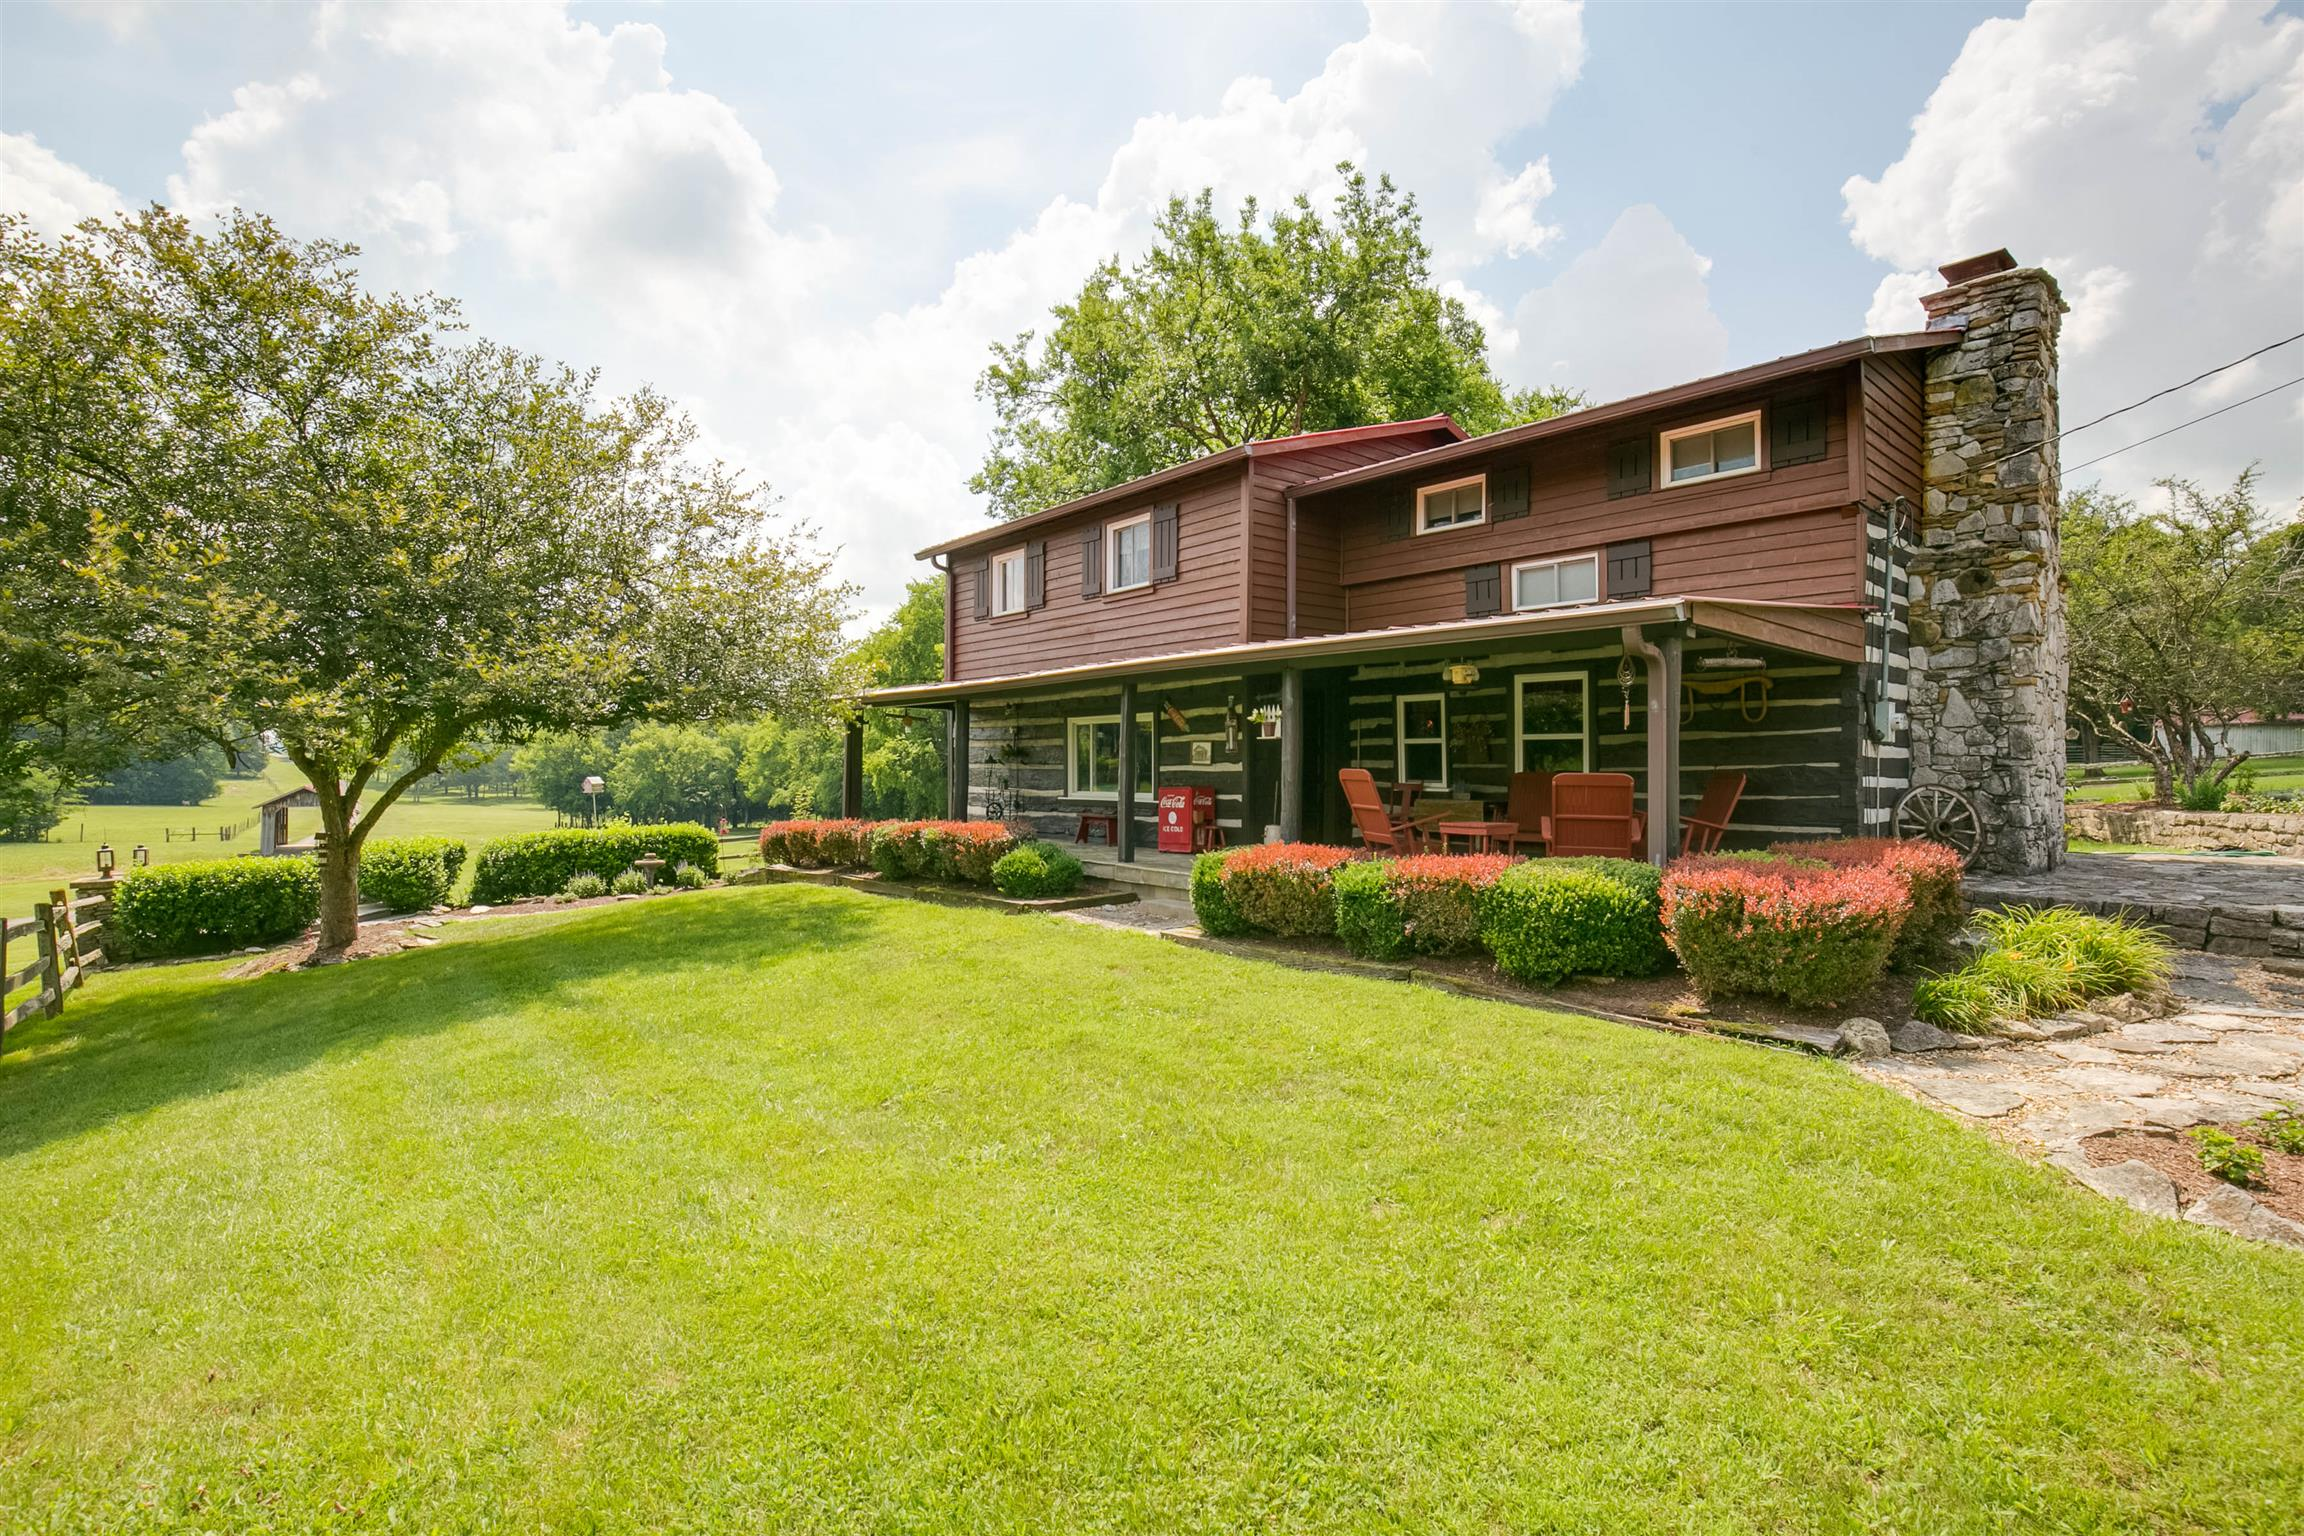 6530 Cainsville Rd, Lebanon, Tennessee